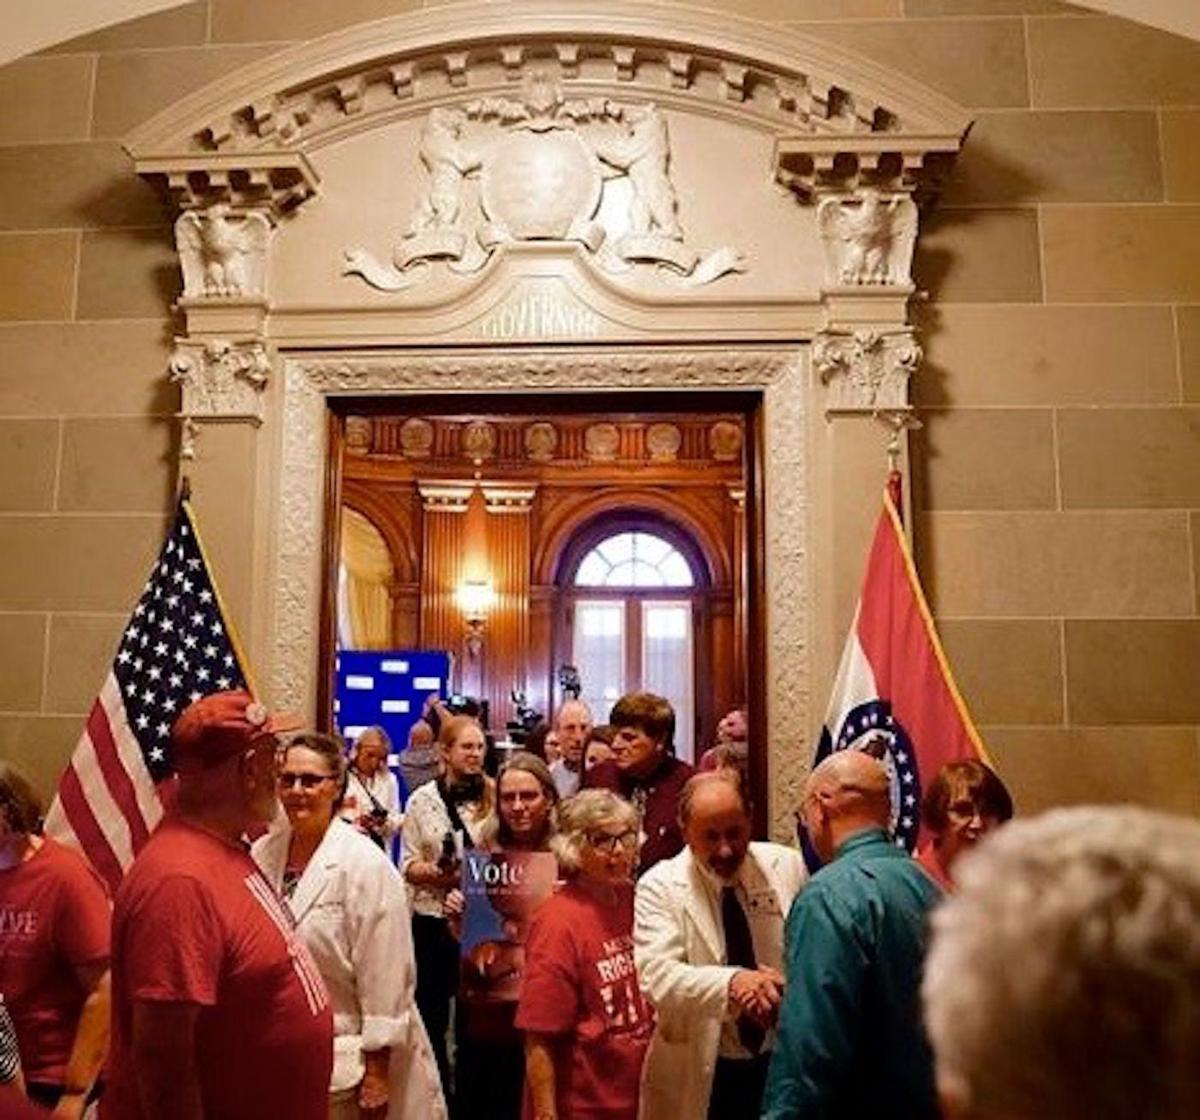 Leaving The Missouri Senate Chambers